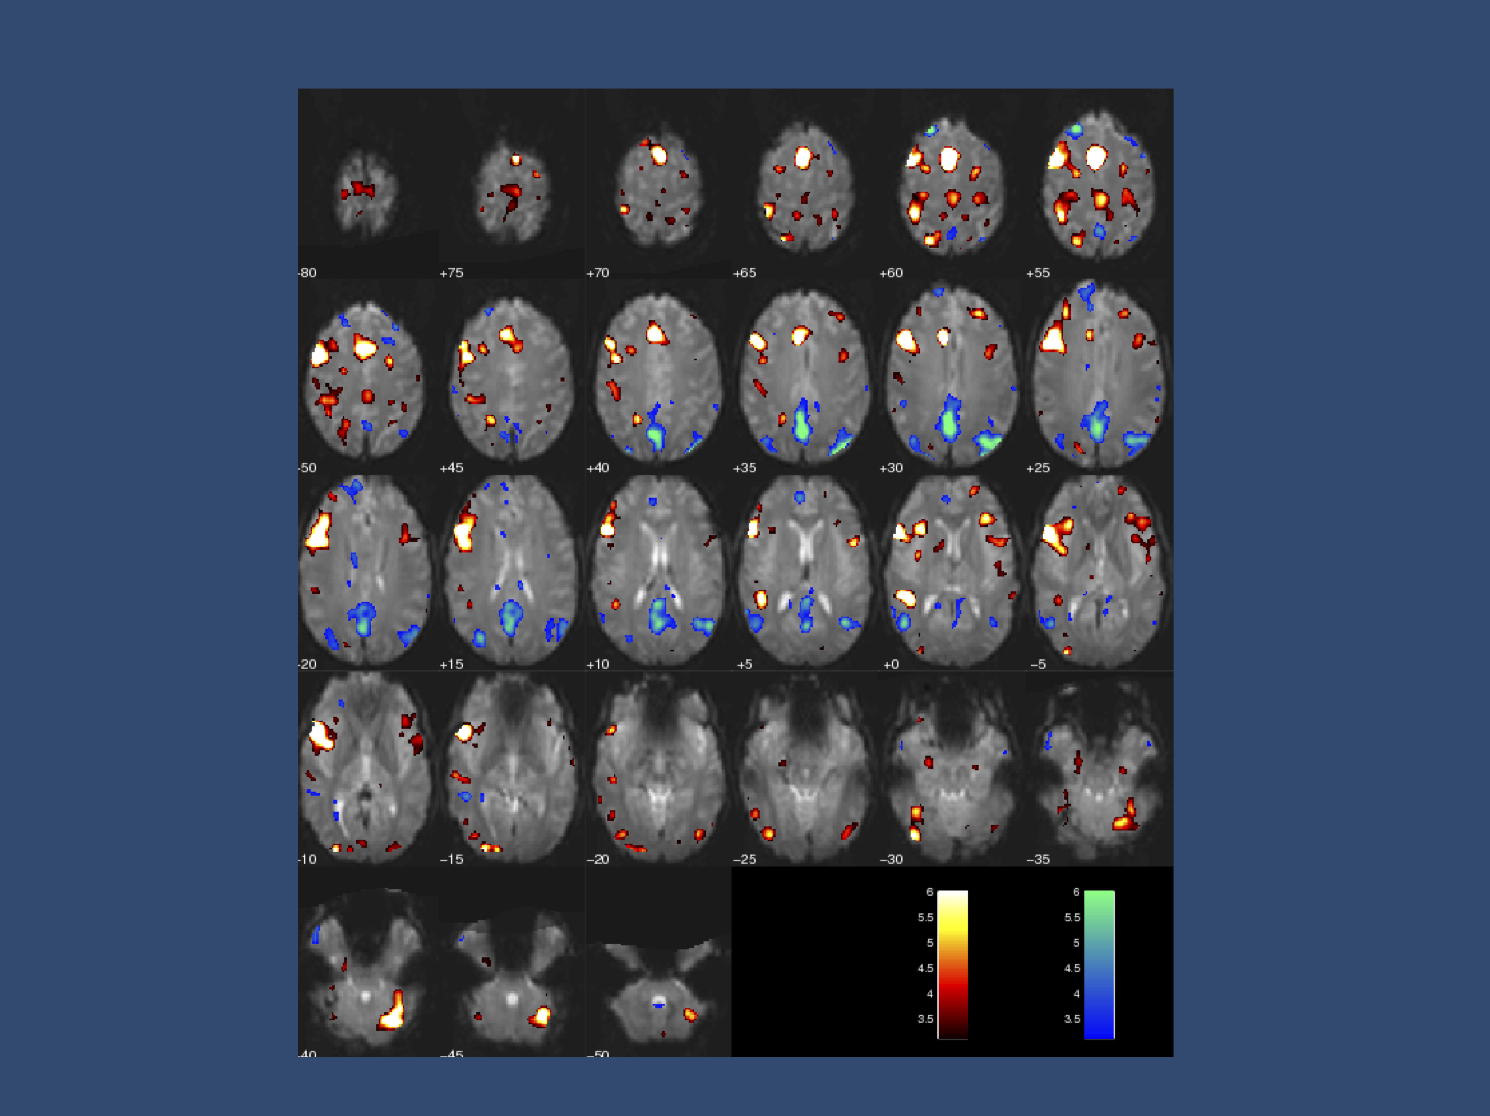 In early 2008, I managed to fail as a control in a functional MRI study performed in the Brain Research Centre in Melbourne, Australia. The colorful blobs indicate activation of brain regions during speech. It took me a minute to realize that my speech was actually on the wrong side, likely as a consequence of some alterations in my left hemisphere, as is regularly observed in people who stutter. I was supposed to be a control for an epilepsy study, but they probably took me out.